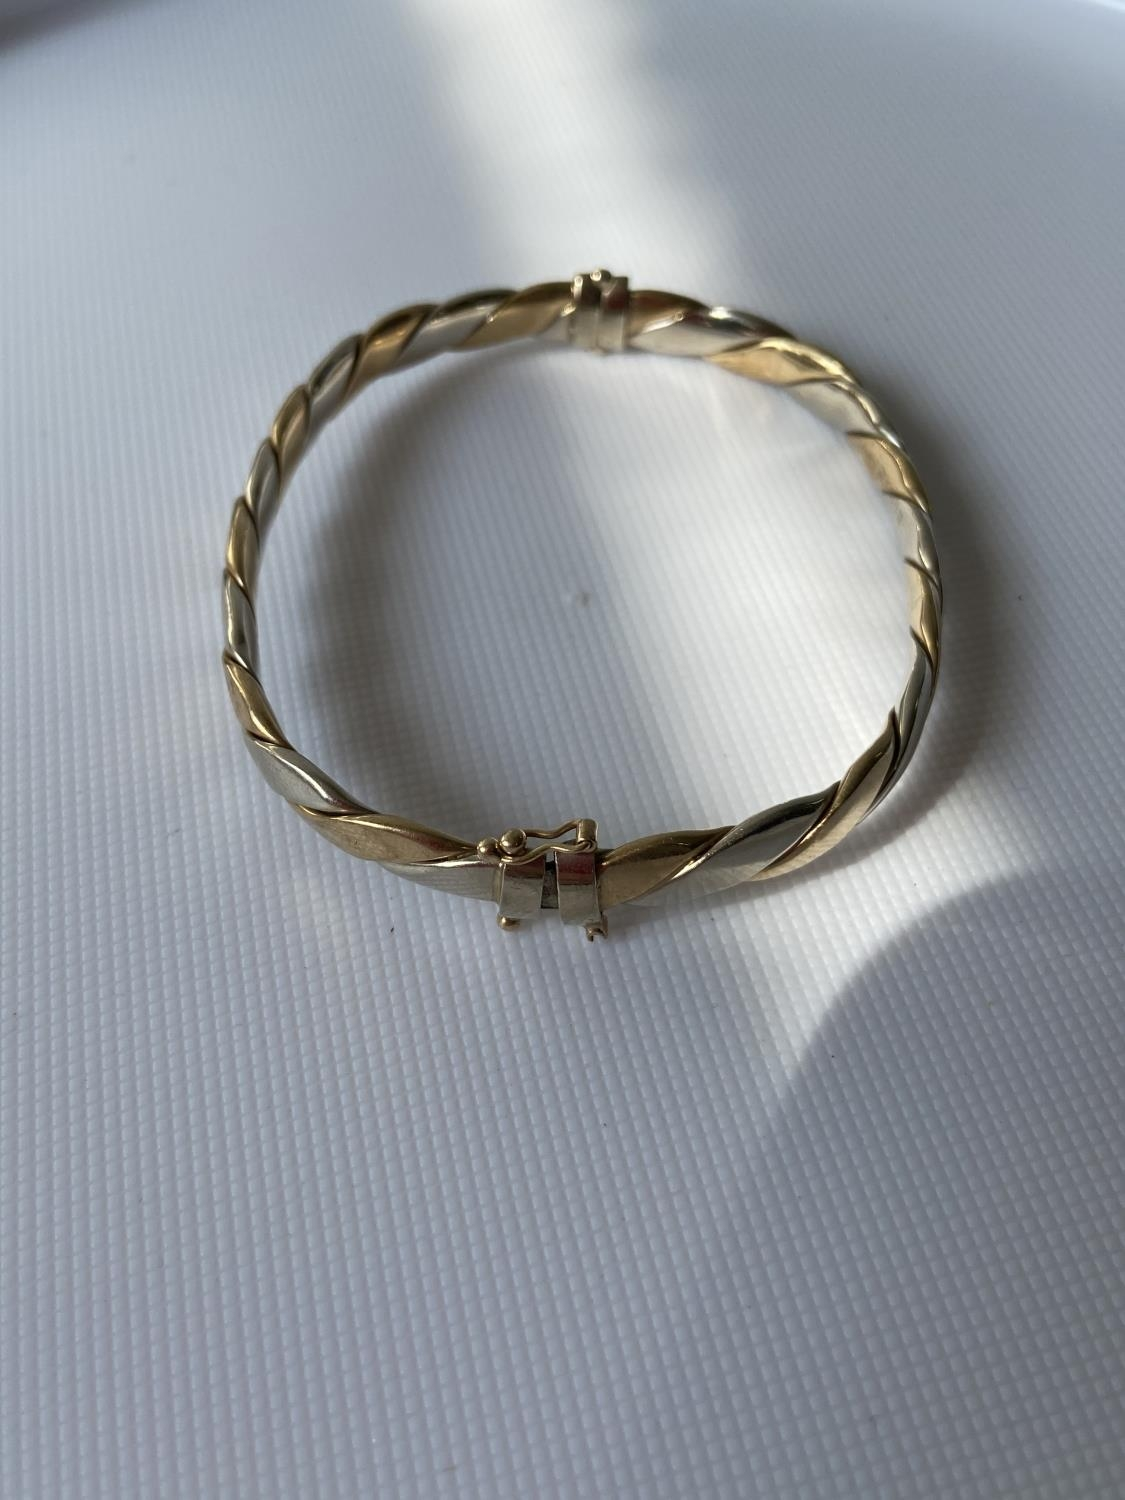 A London export 9ct gold two tone bangle (missing clasp) [5x5cm] [10-25g] - Image 4 of 4